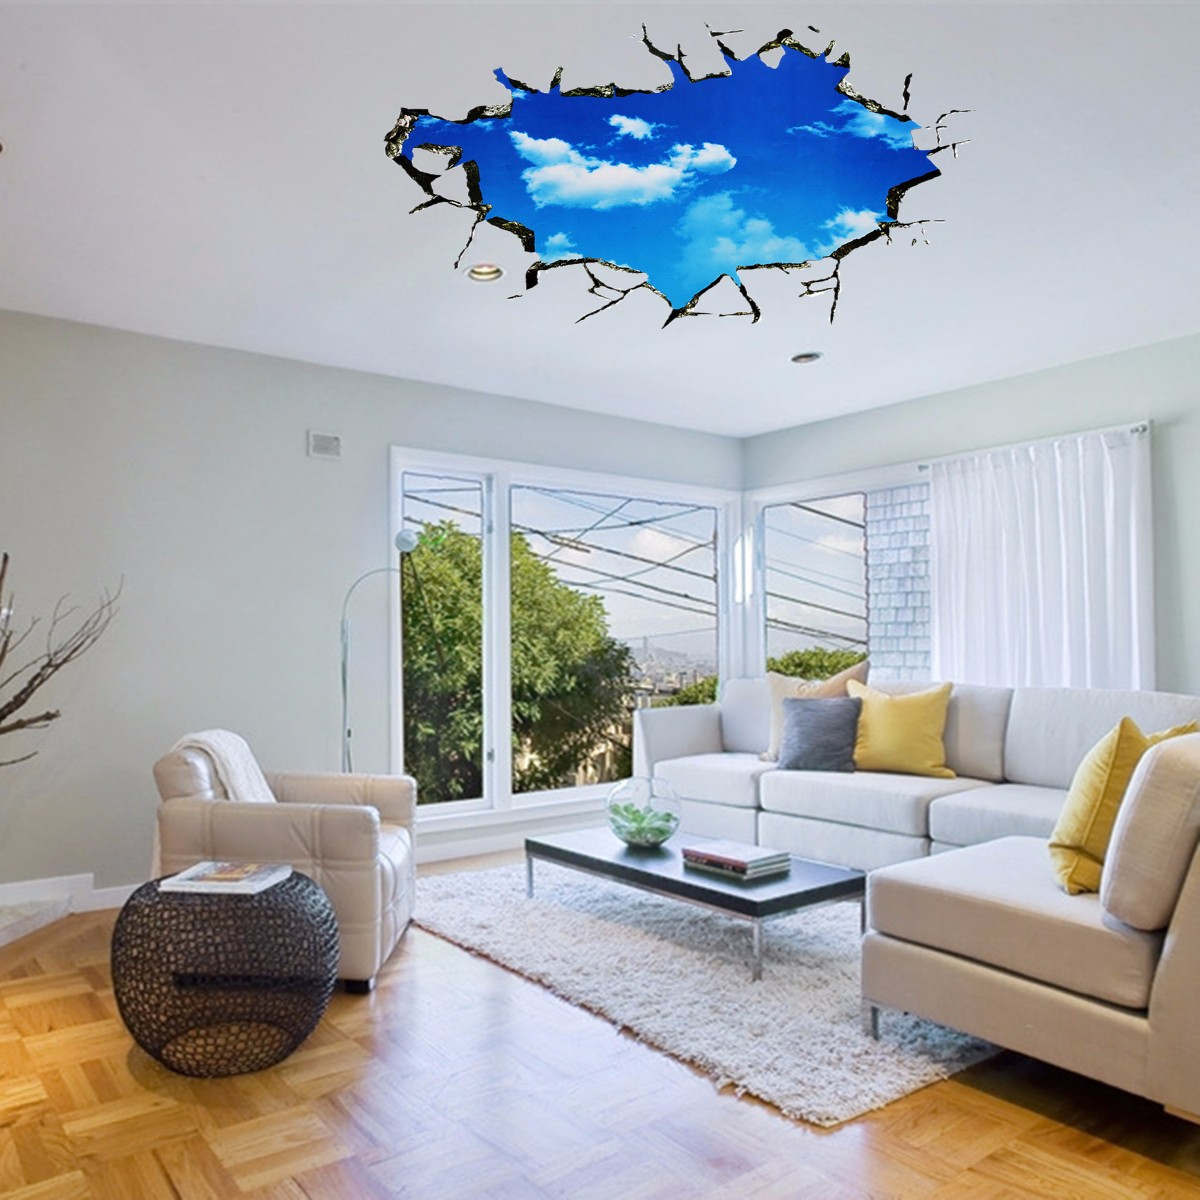 Pag blue sky 3d wall decals sticker ceiling hole sticker home bedroom wall de - Decoration mural design ...